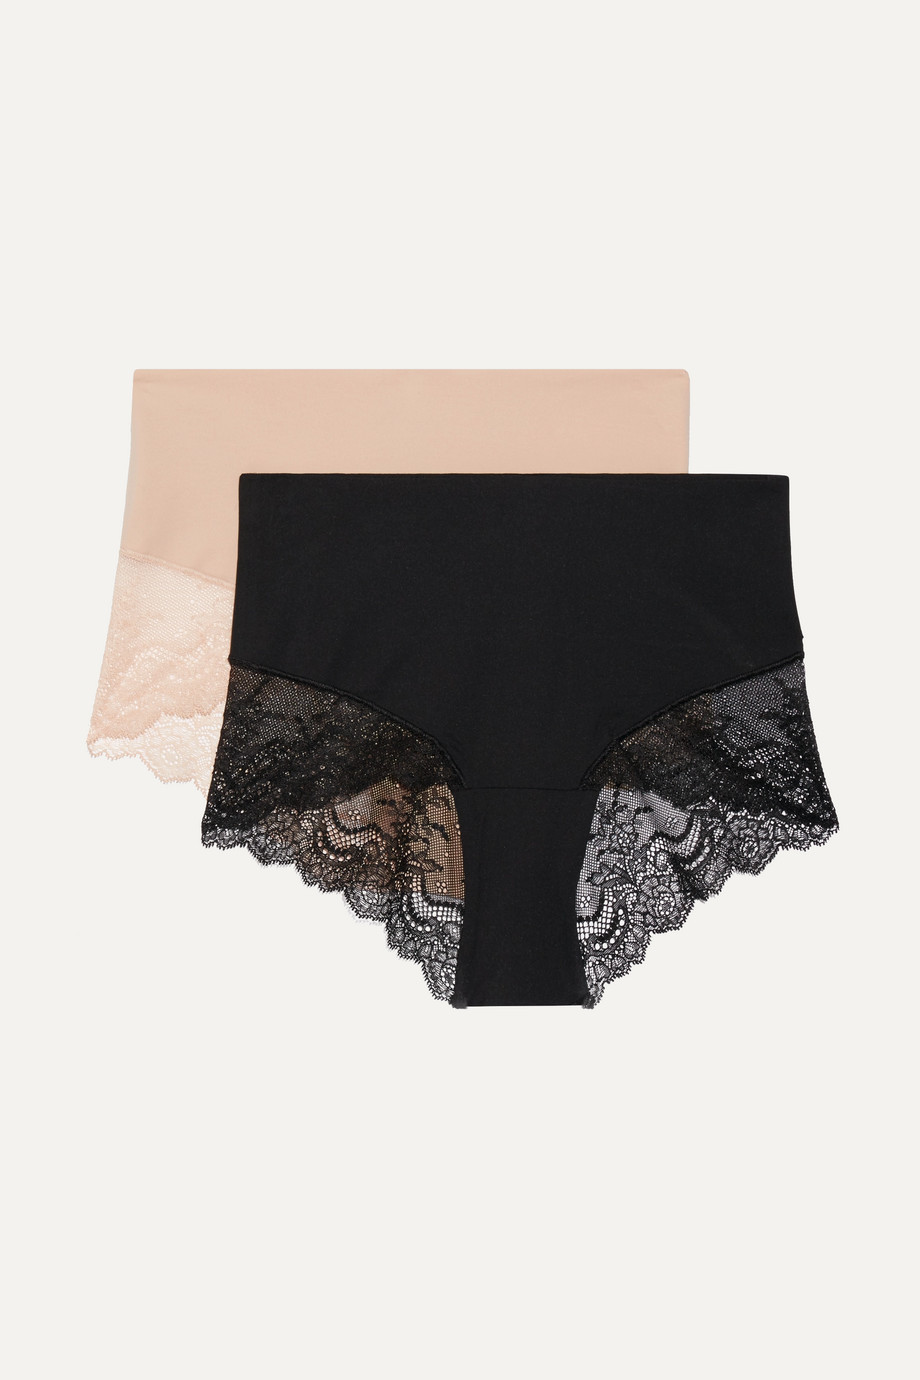 Spanx Undie-tectable set of two stretch-jersey and lace briefs